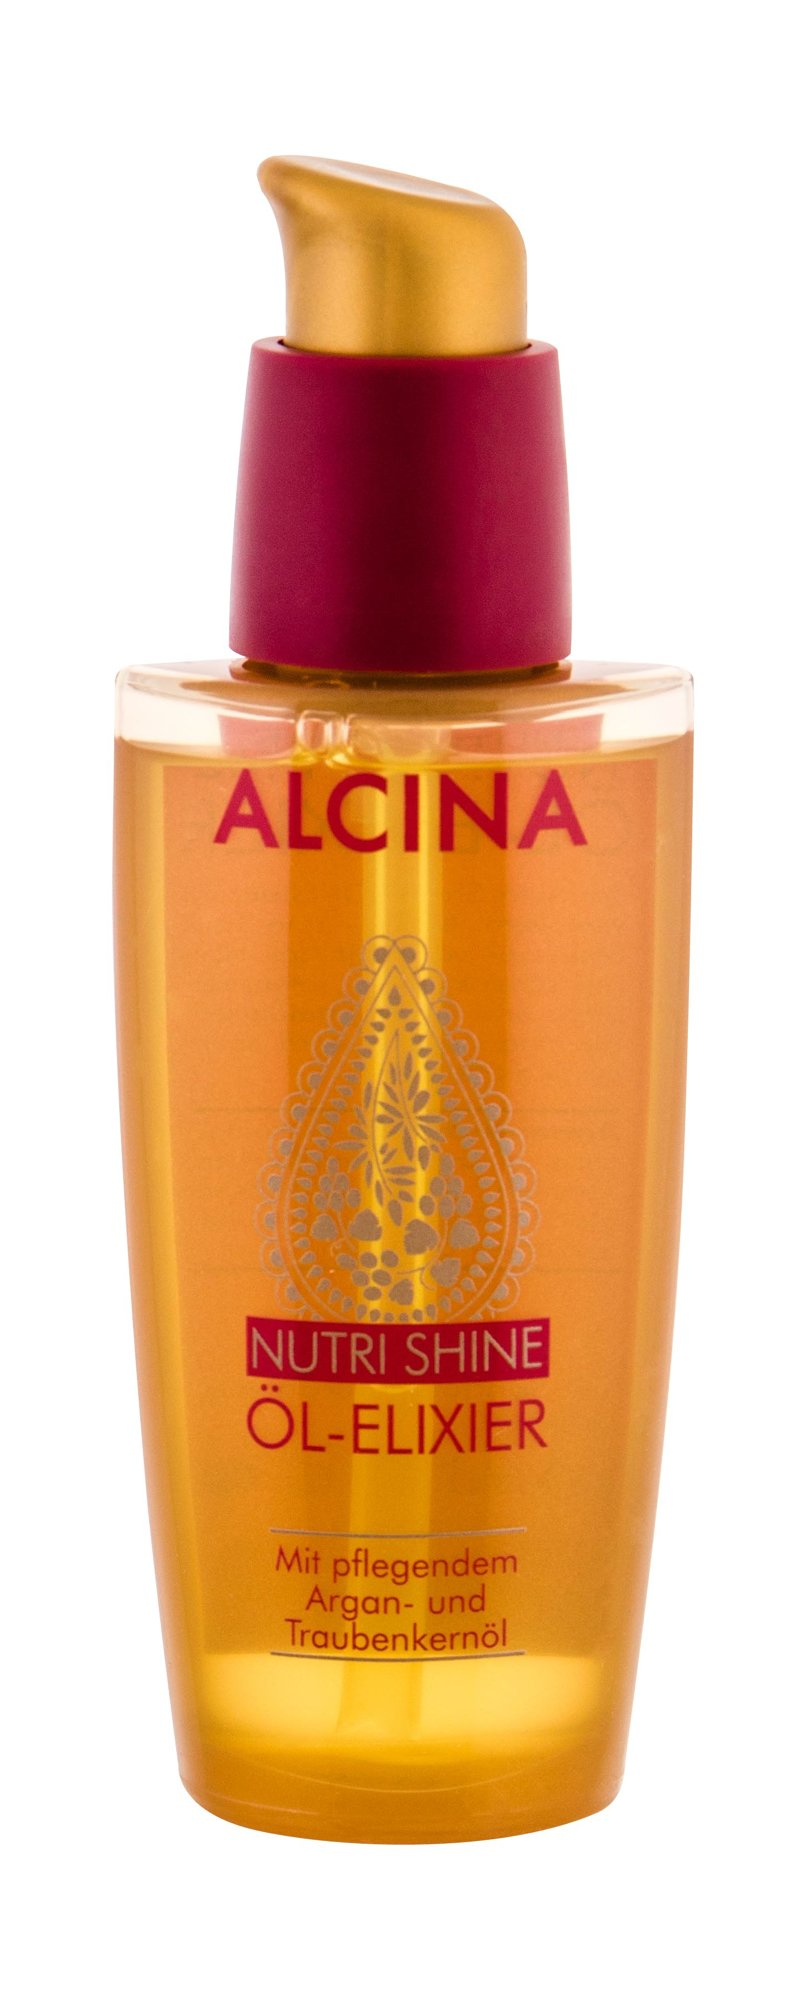 ALCINA Nutri Shine Hair Oils and Serum 50ml